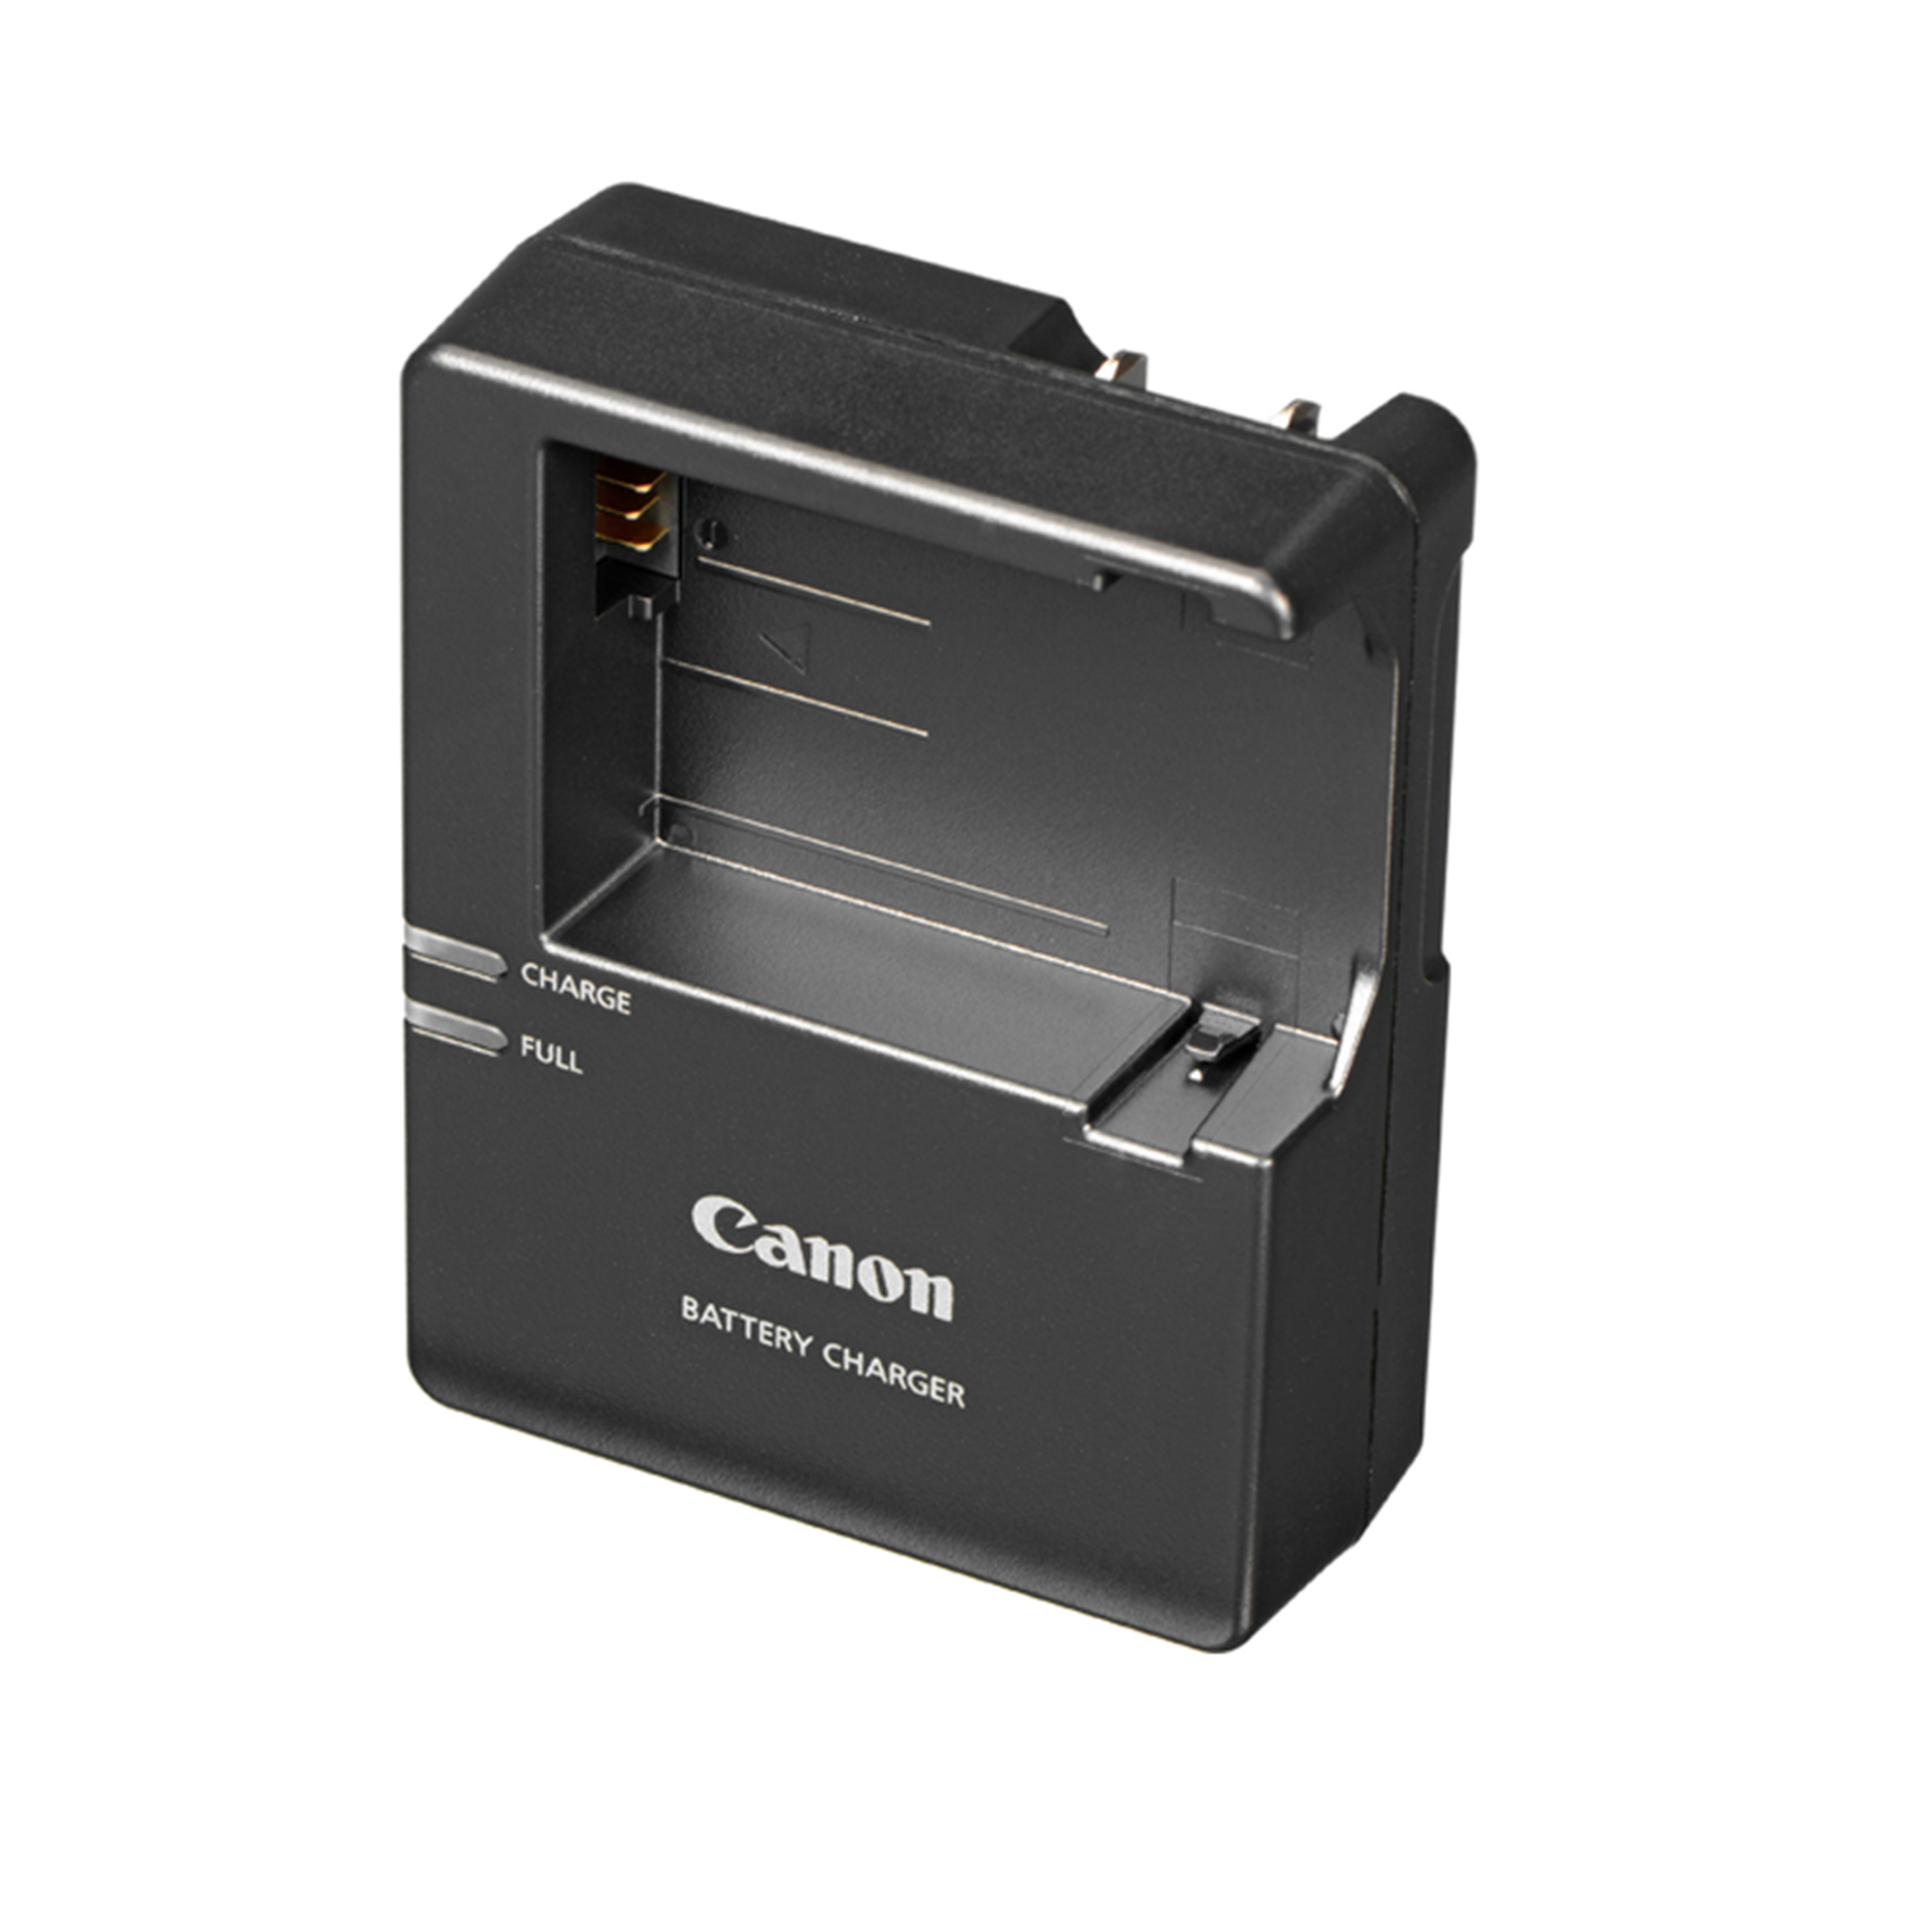 Canon LC-E8E Charger for LP-E8 Battery Pack